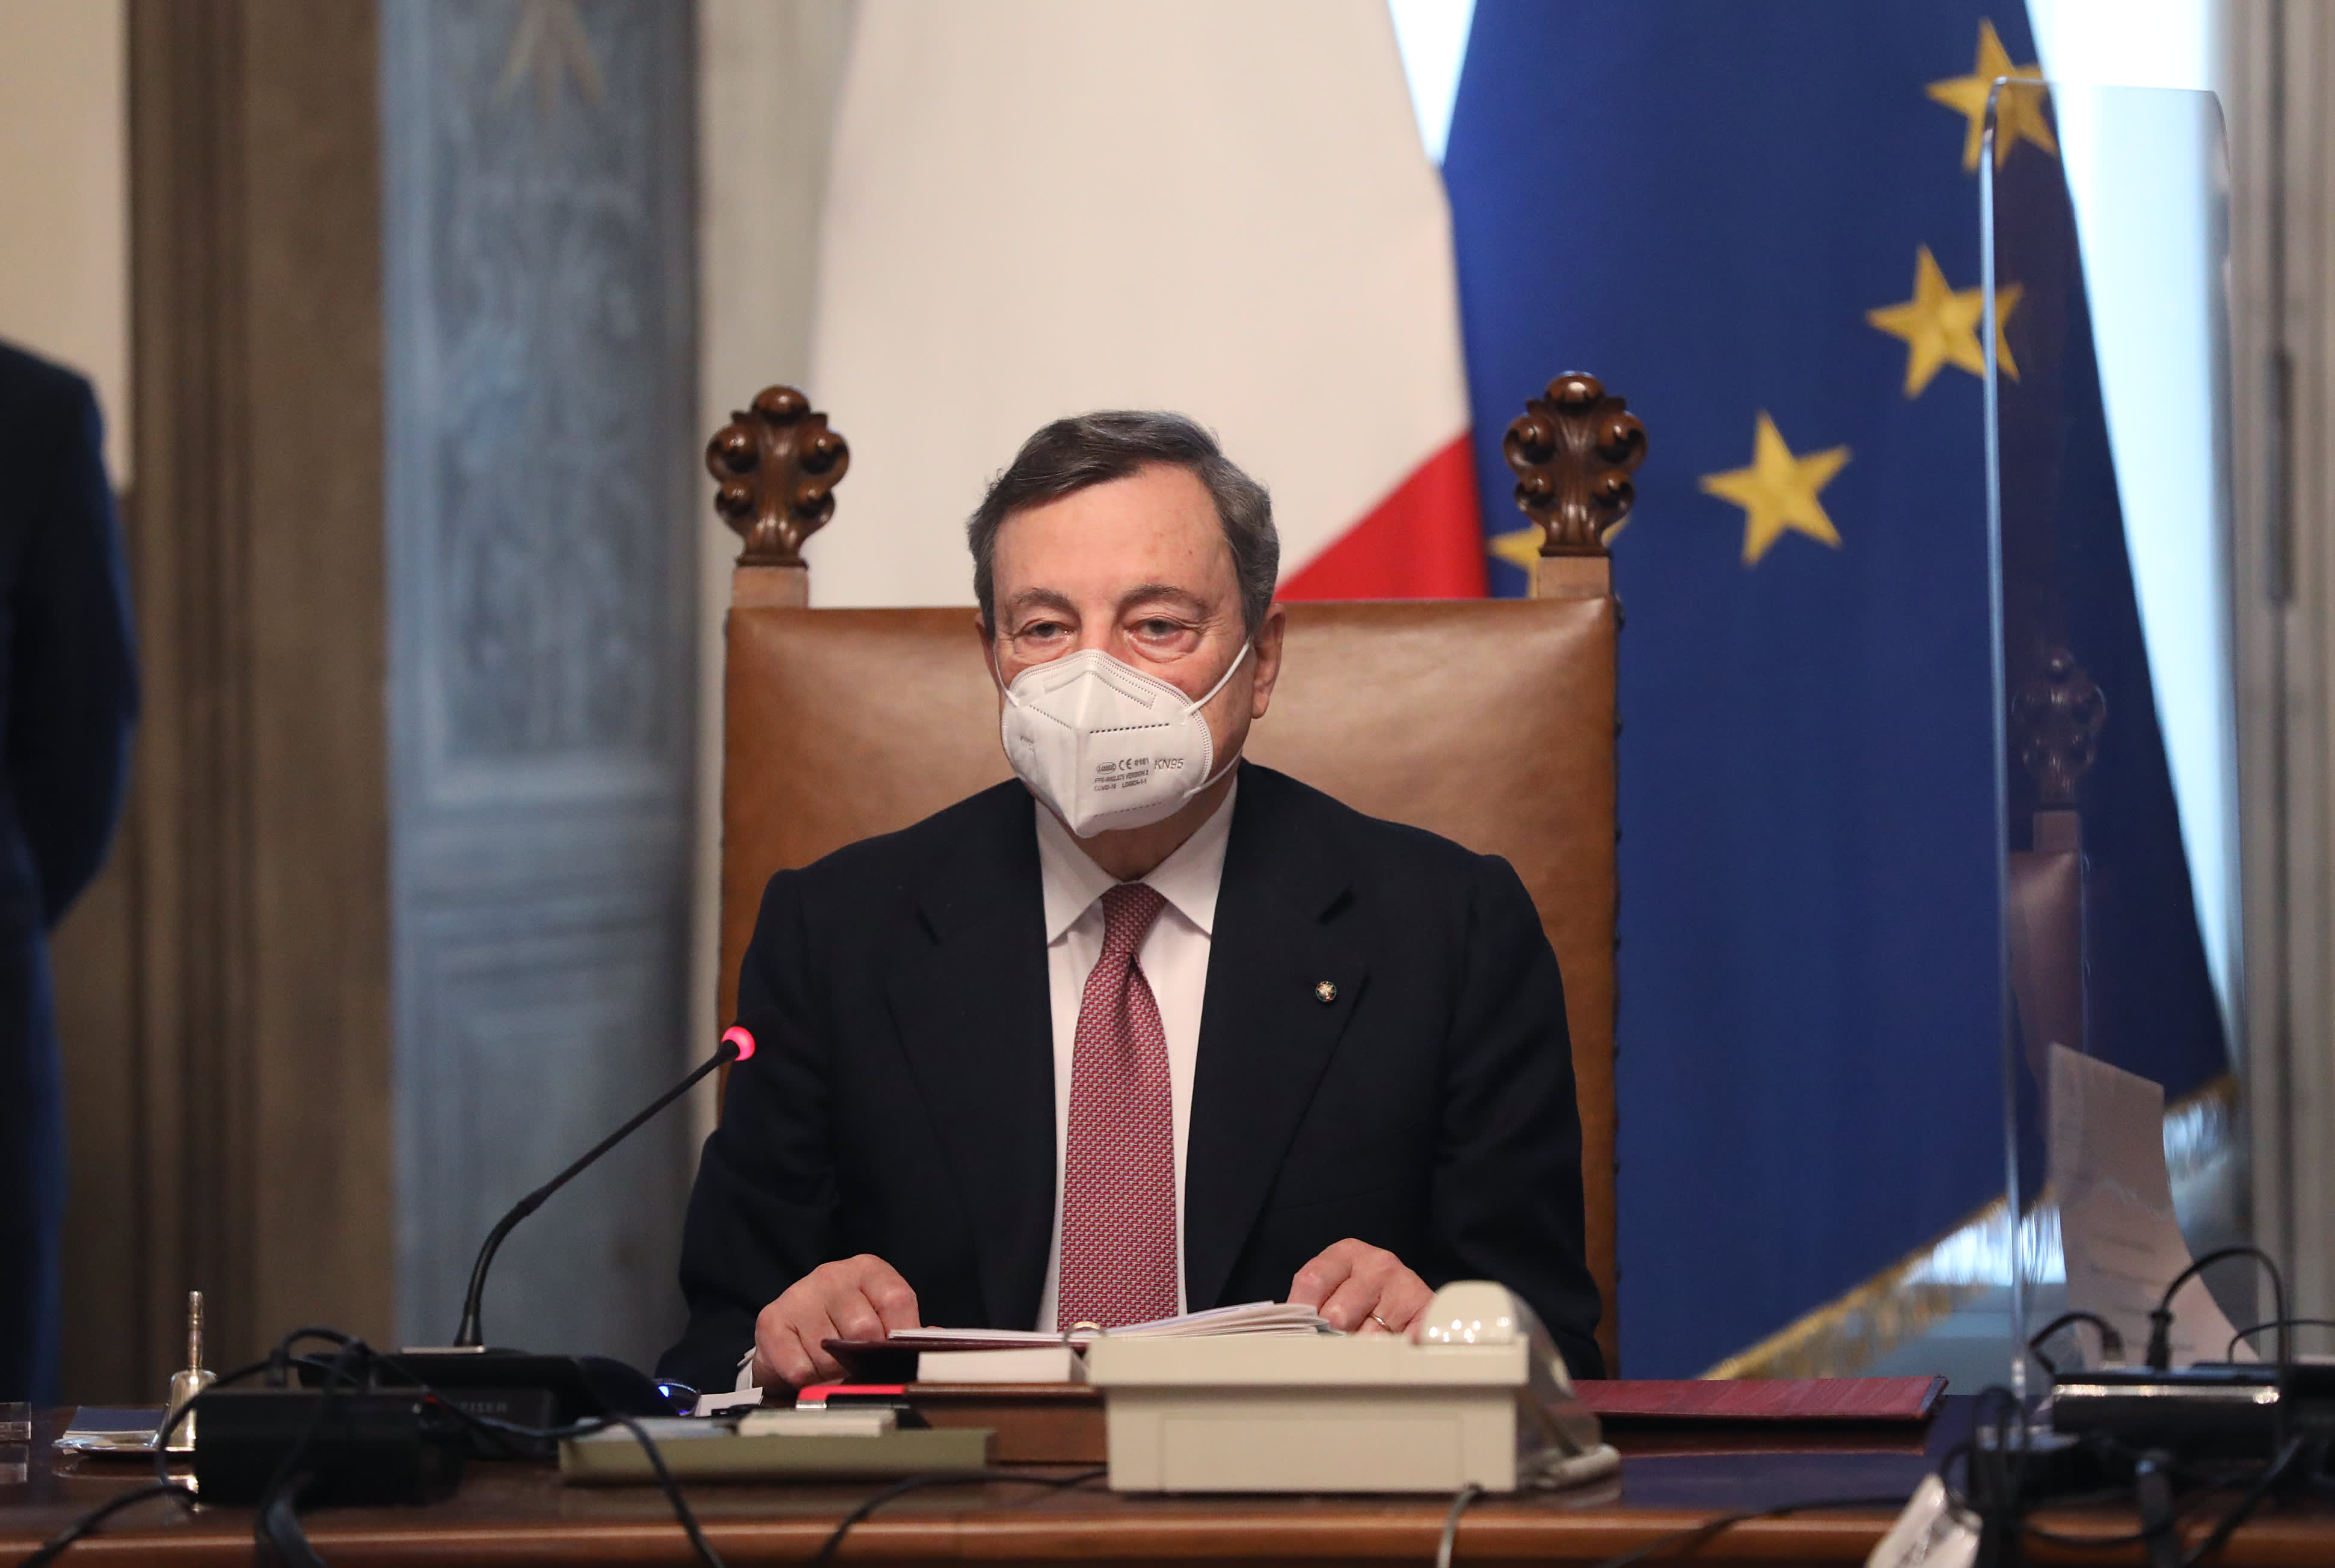 Mario Draghi presents Italy's new cabinet after an uprising of EU funds